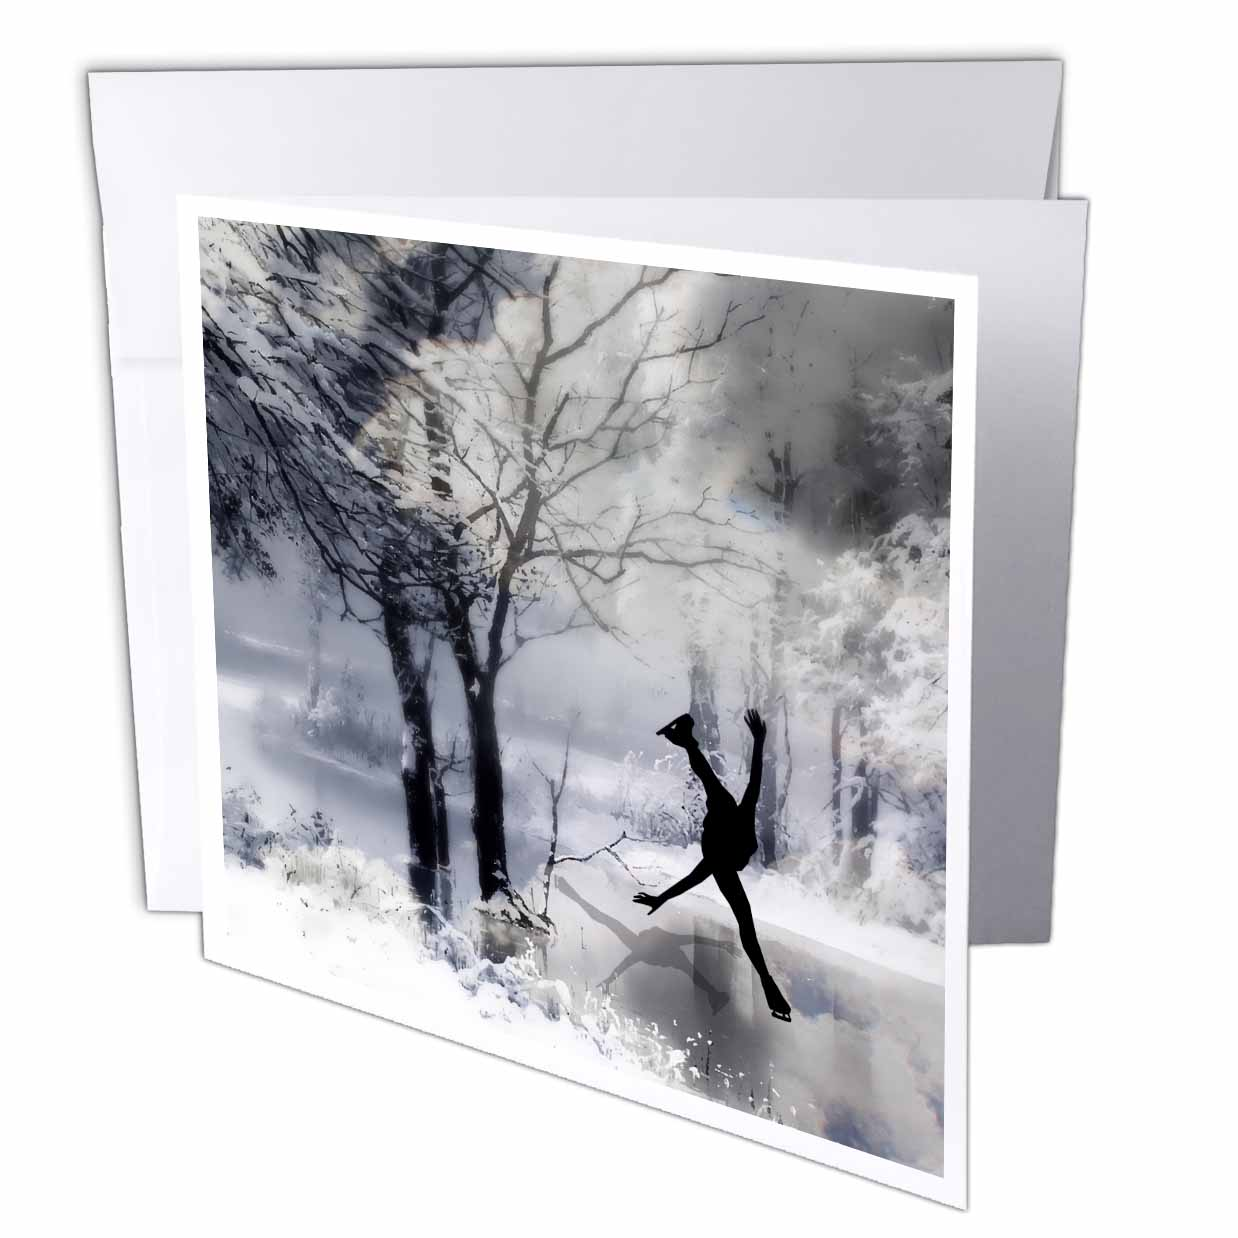 3dRose Figure Skater Silhouette Skating on a frozen pond in a beautiful winter snow scene, Greeting Cards, 6 x 6 inches, set of 6